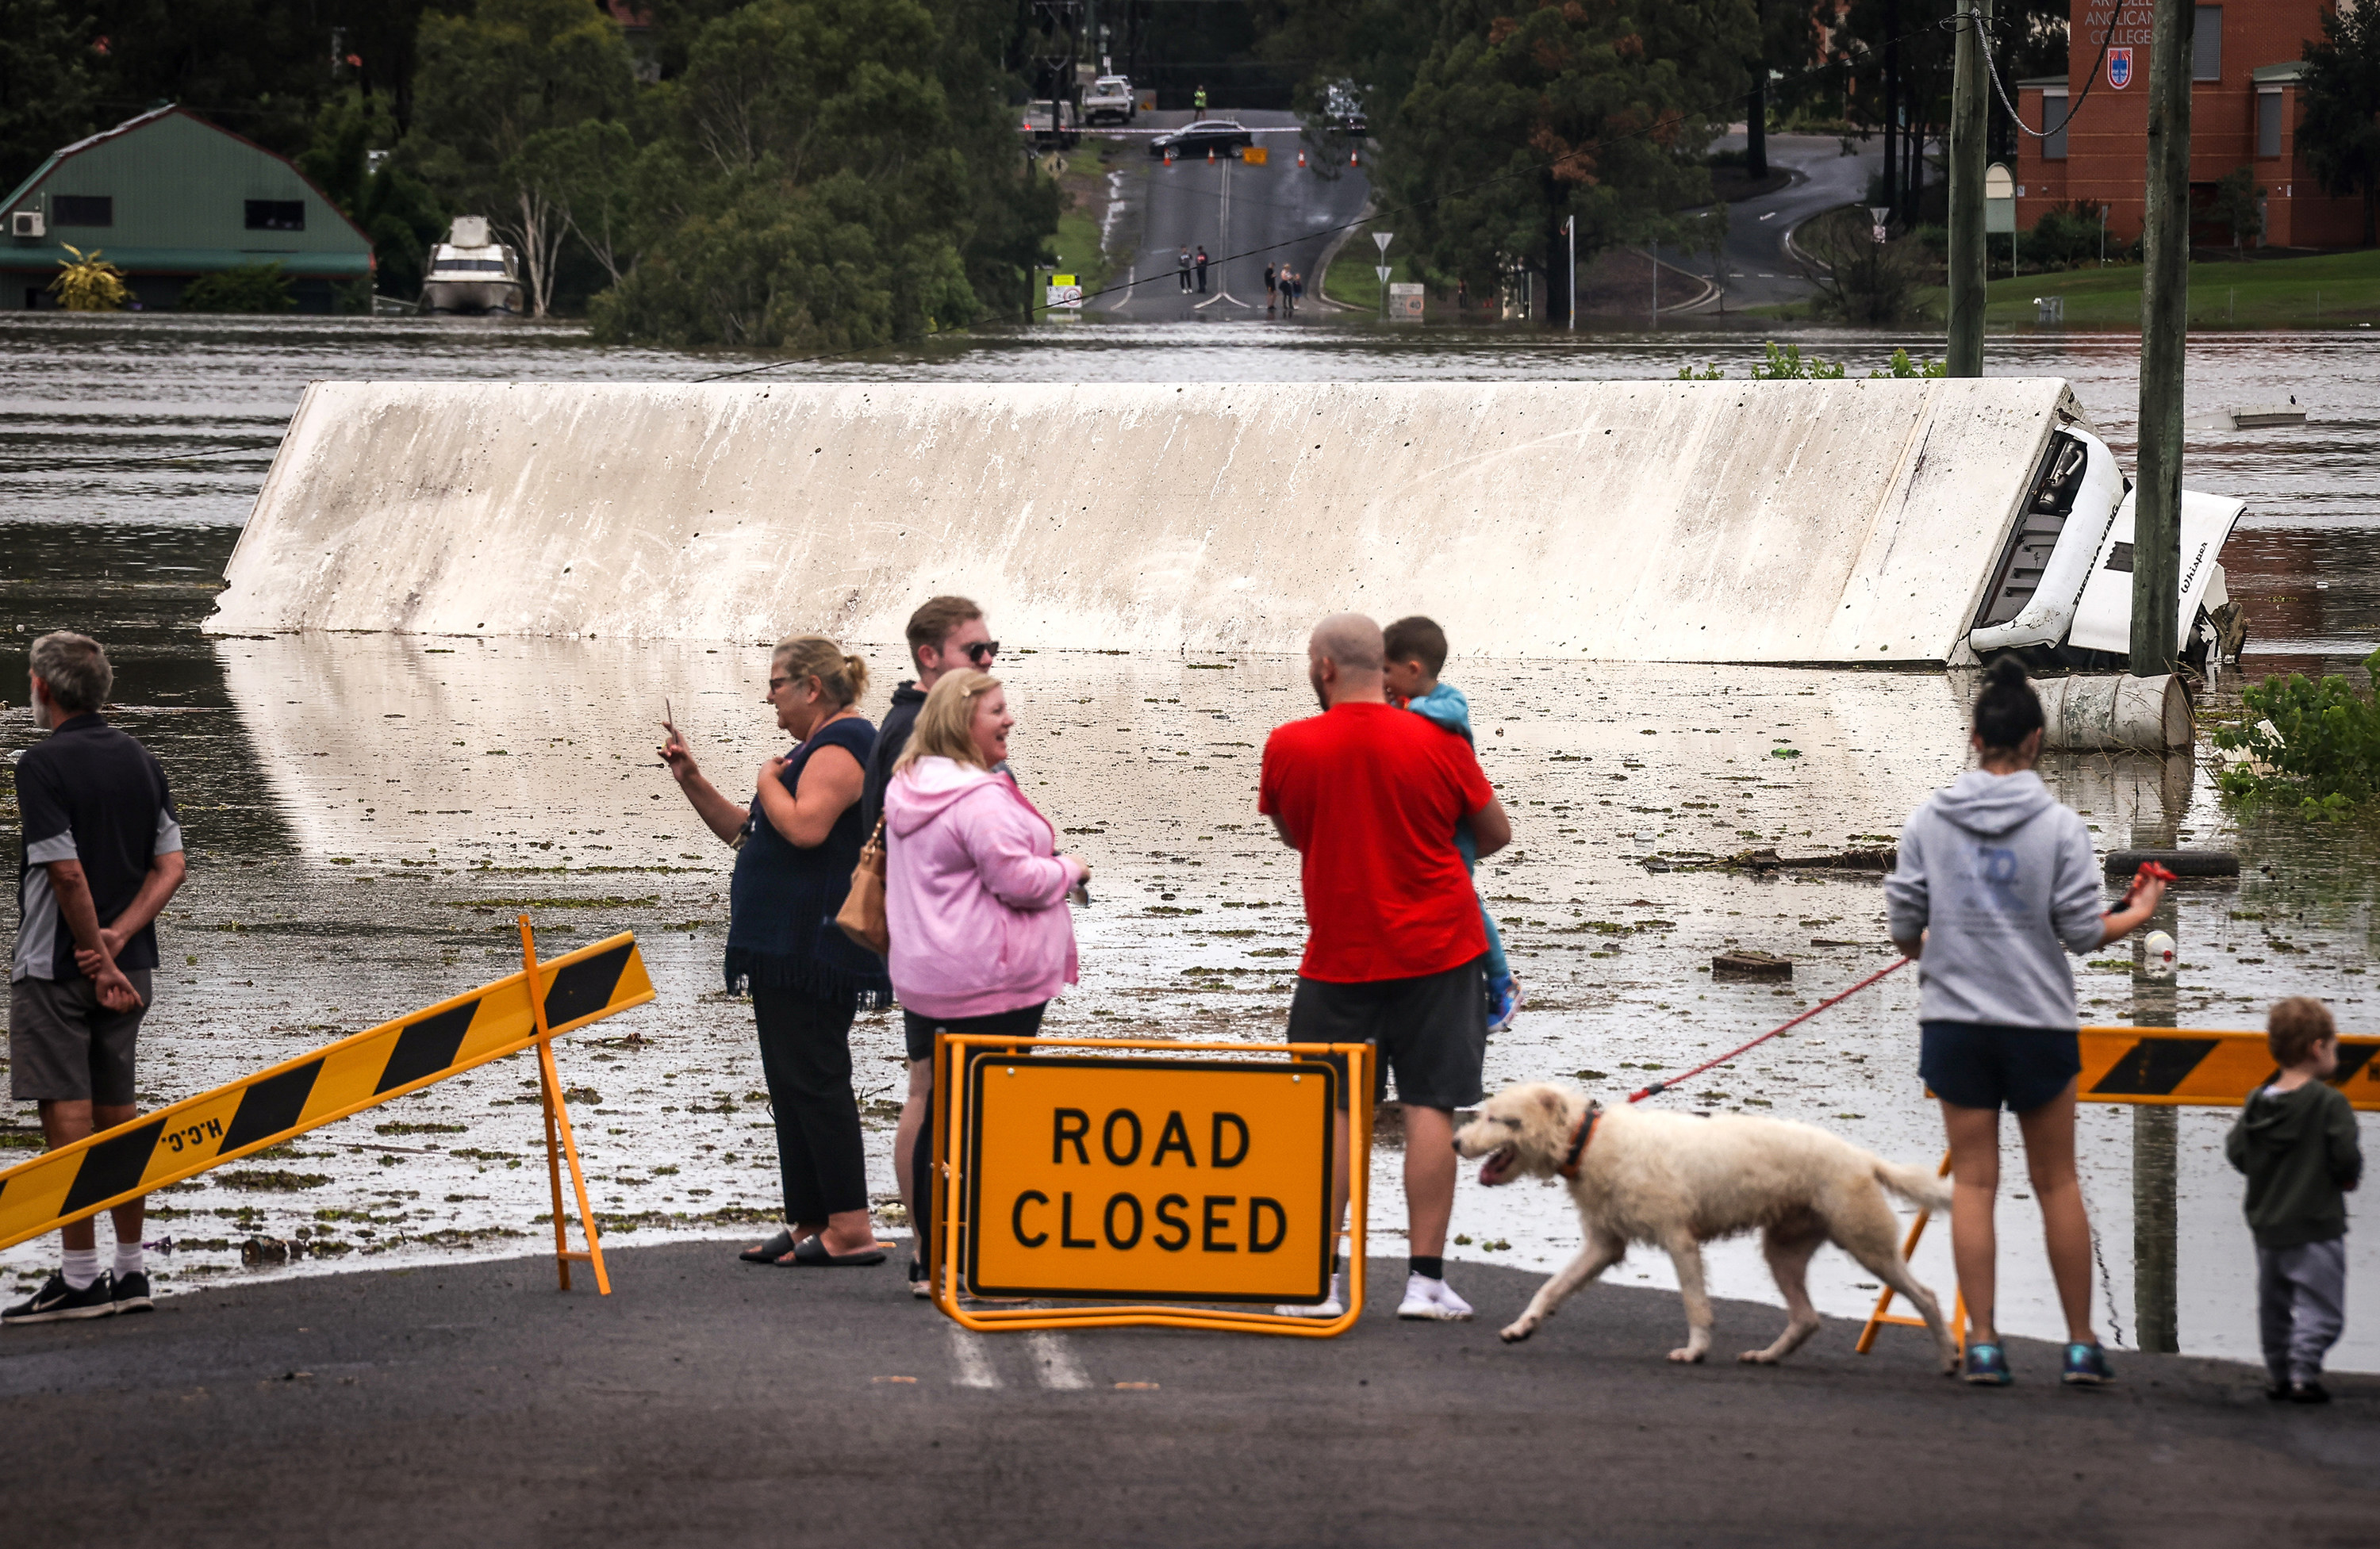 People gather at the end of a flooded area, with road closed signs, to take pictures of a tipped over truck